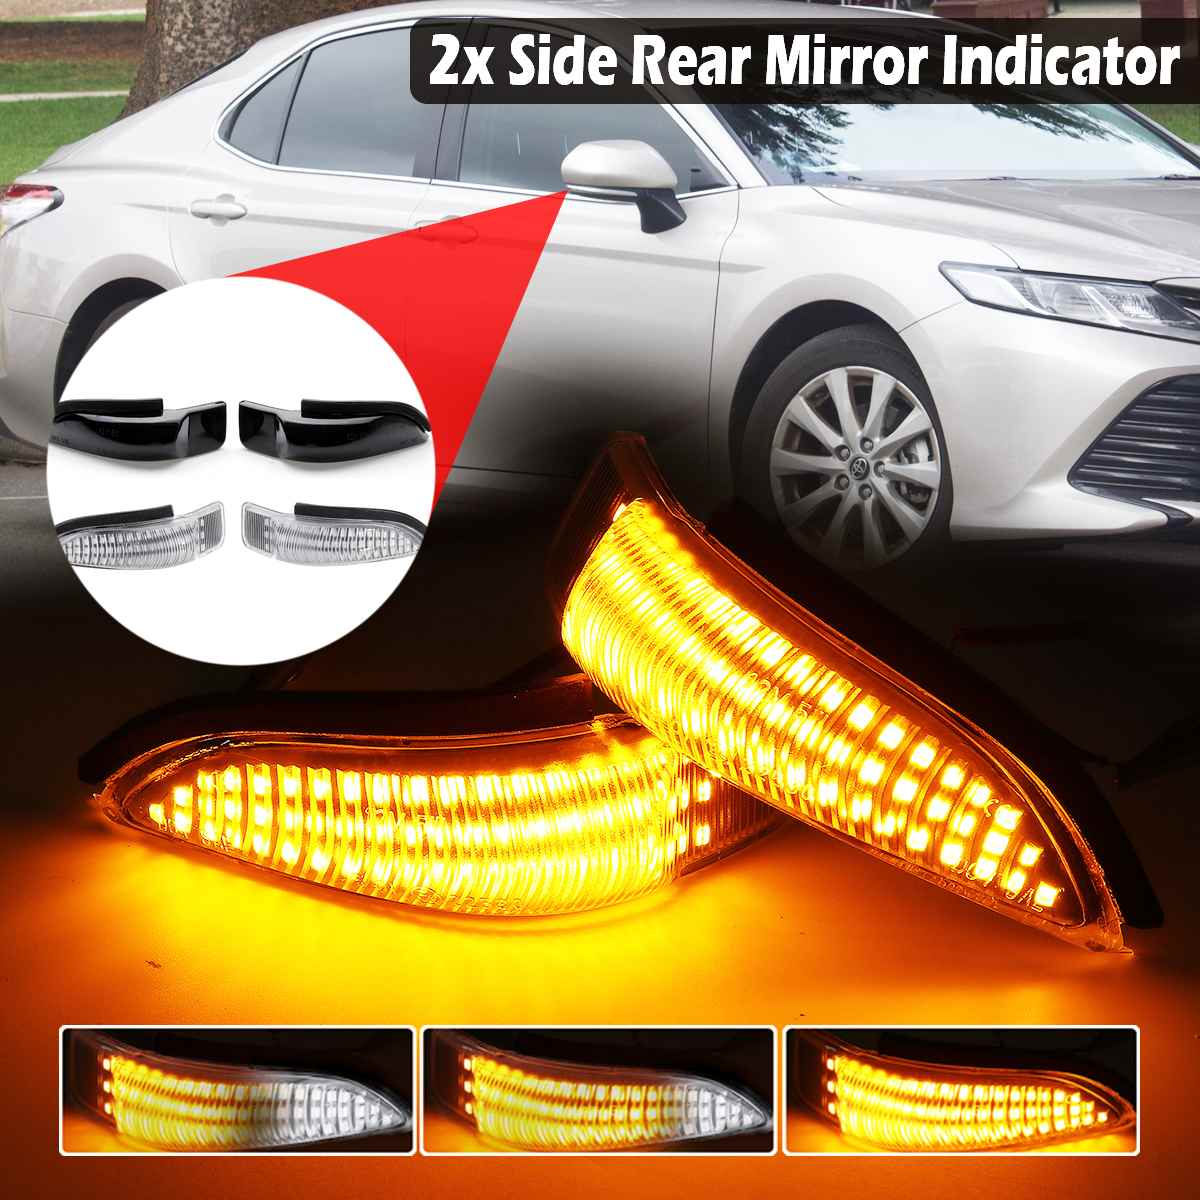 ZC LED DRL Headlight For Lancer EVO X MK VIII Saloon Hatchback 2008-2018 Headlights With Sequential Indicator One Pair